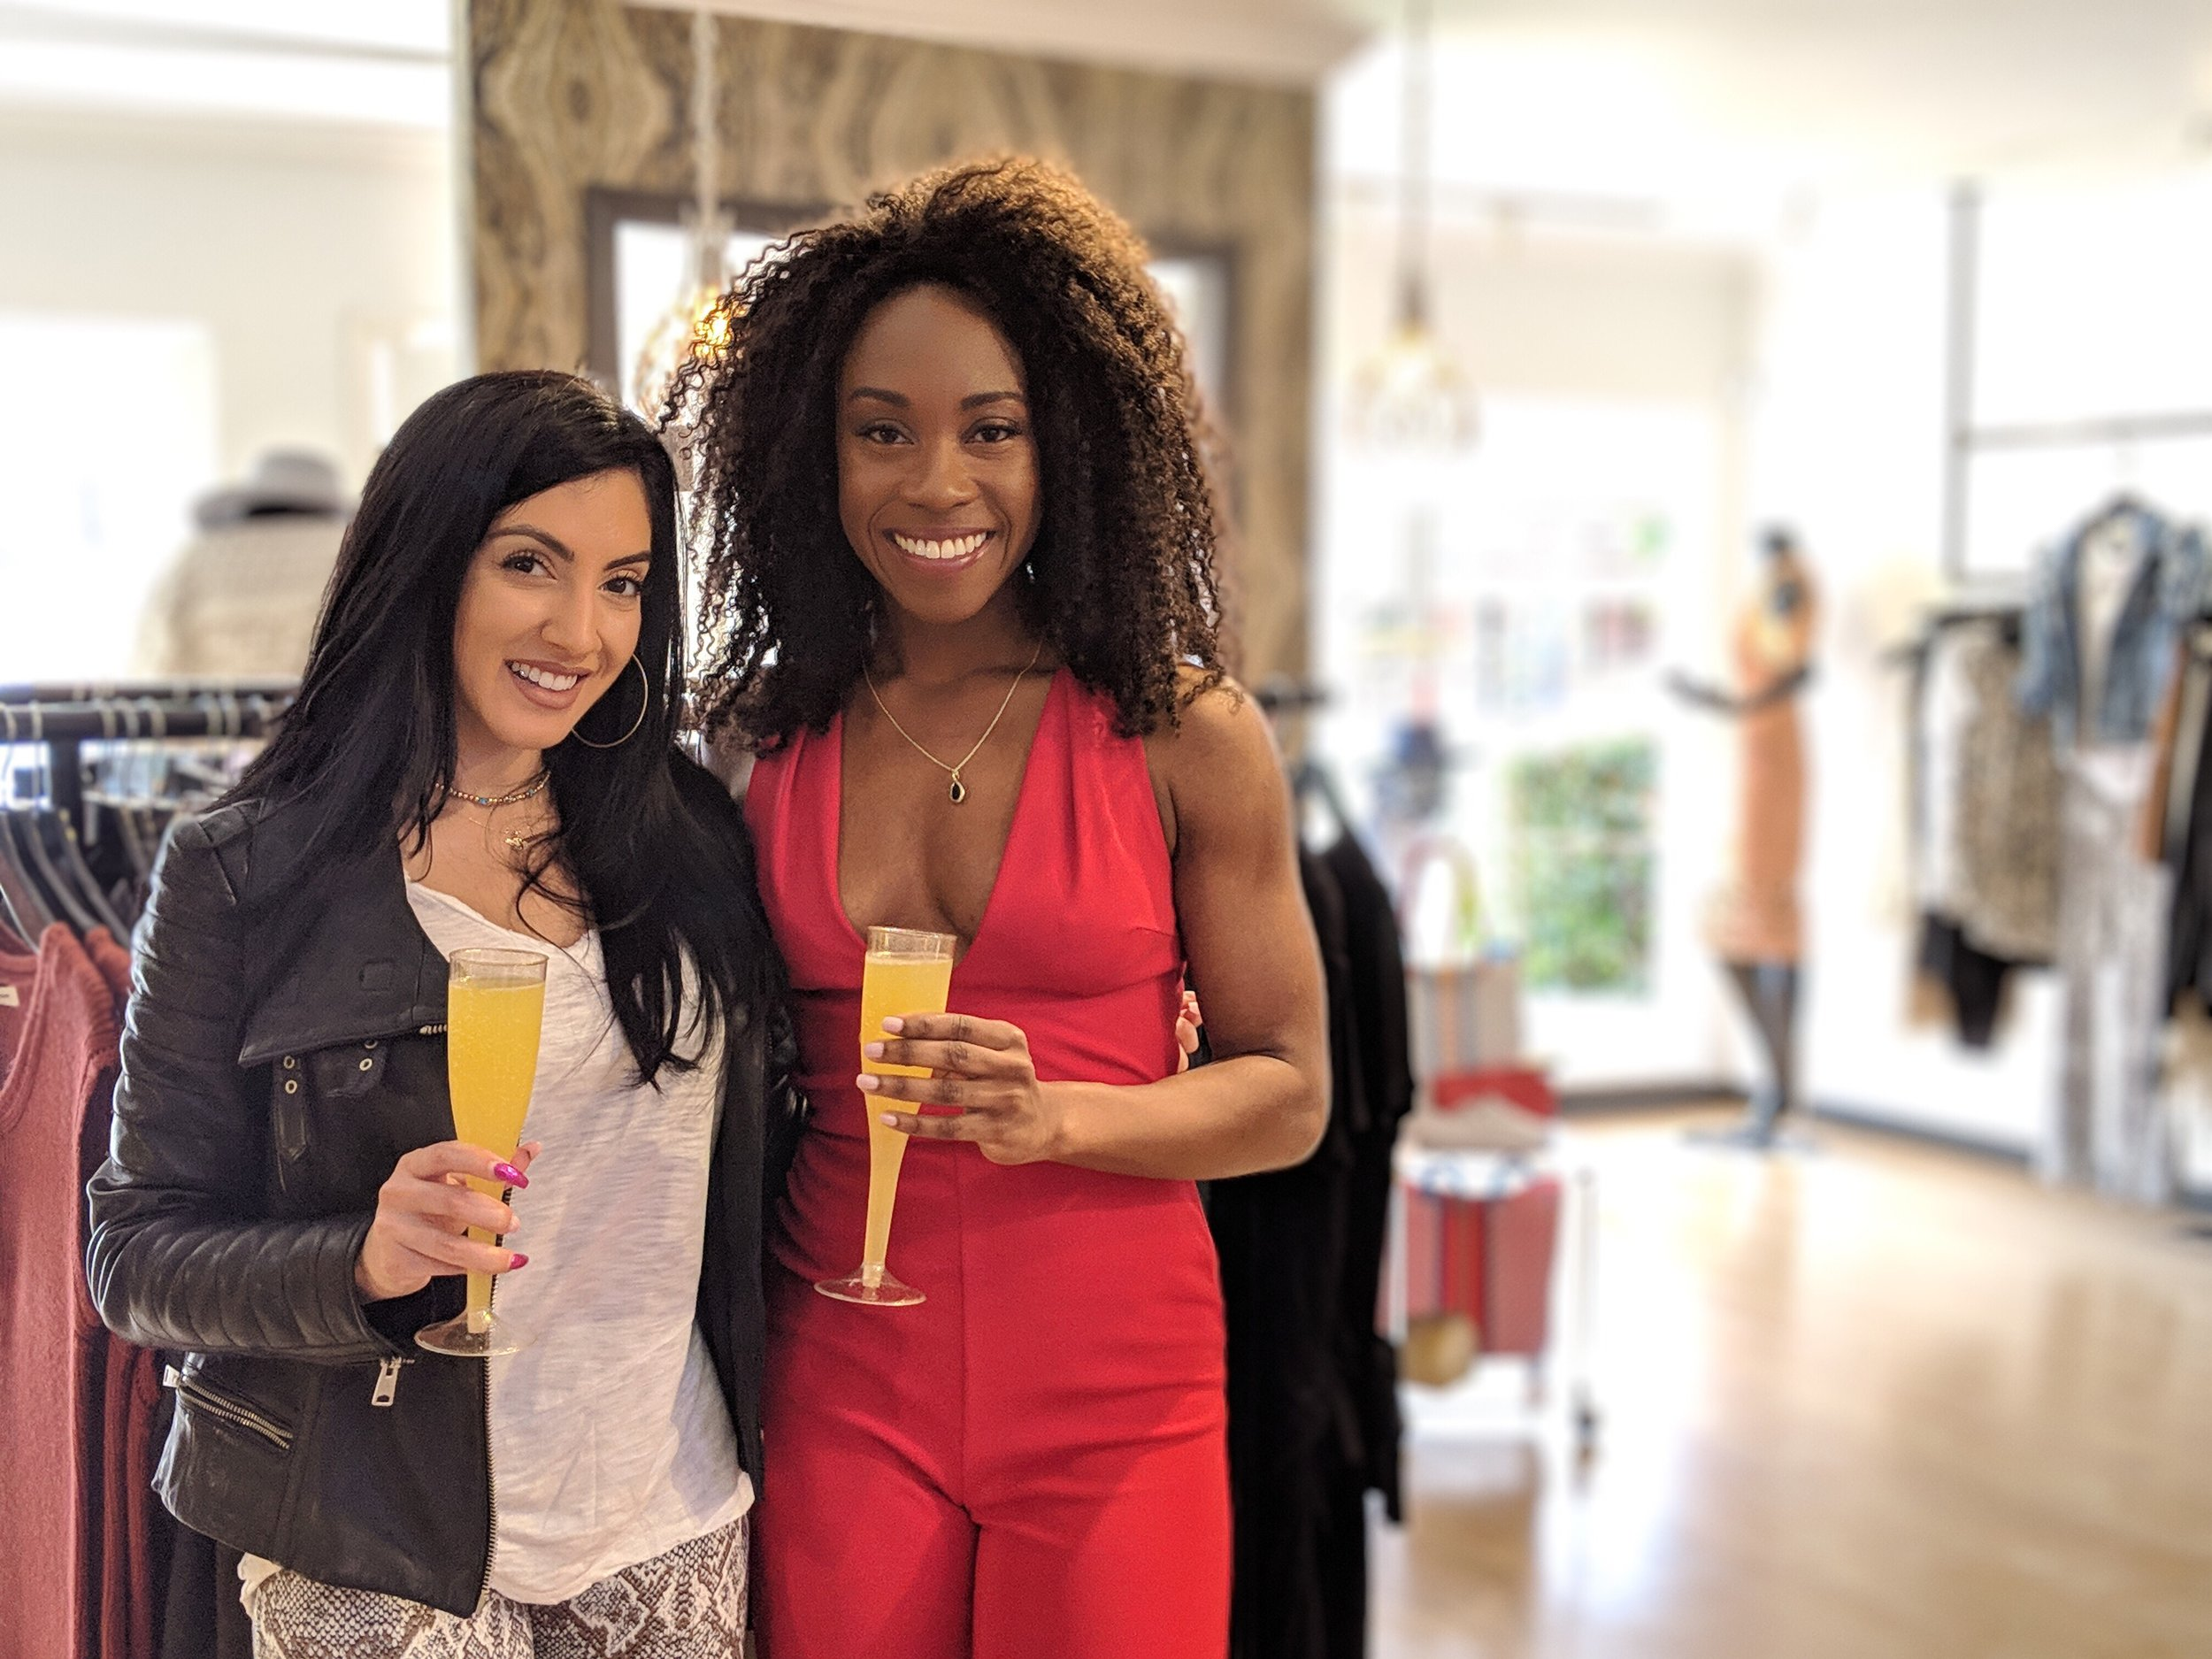 Me with Natalia, the owner of Stone Cold Luxe- a lifestyle boutique in Danville, CA.